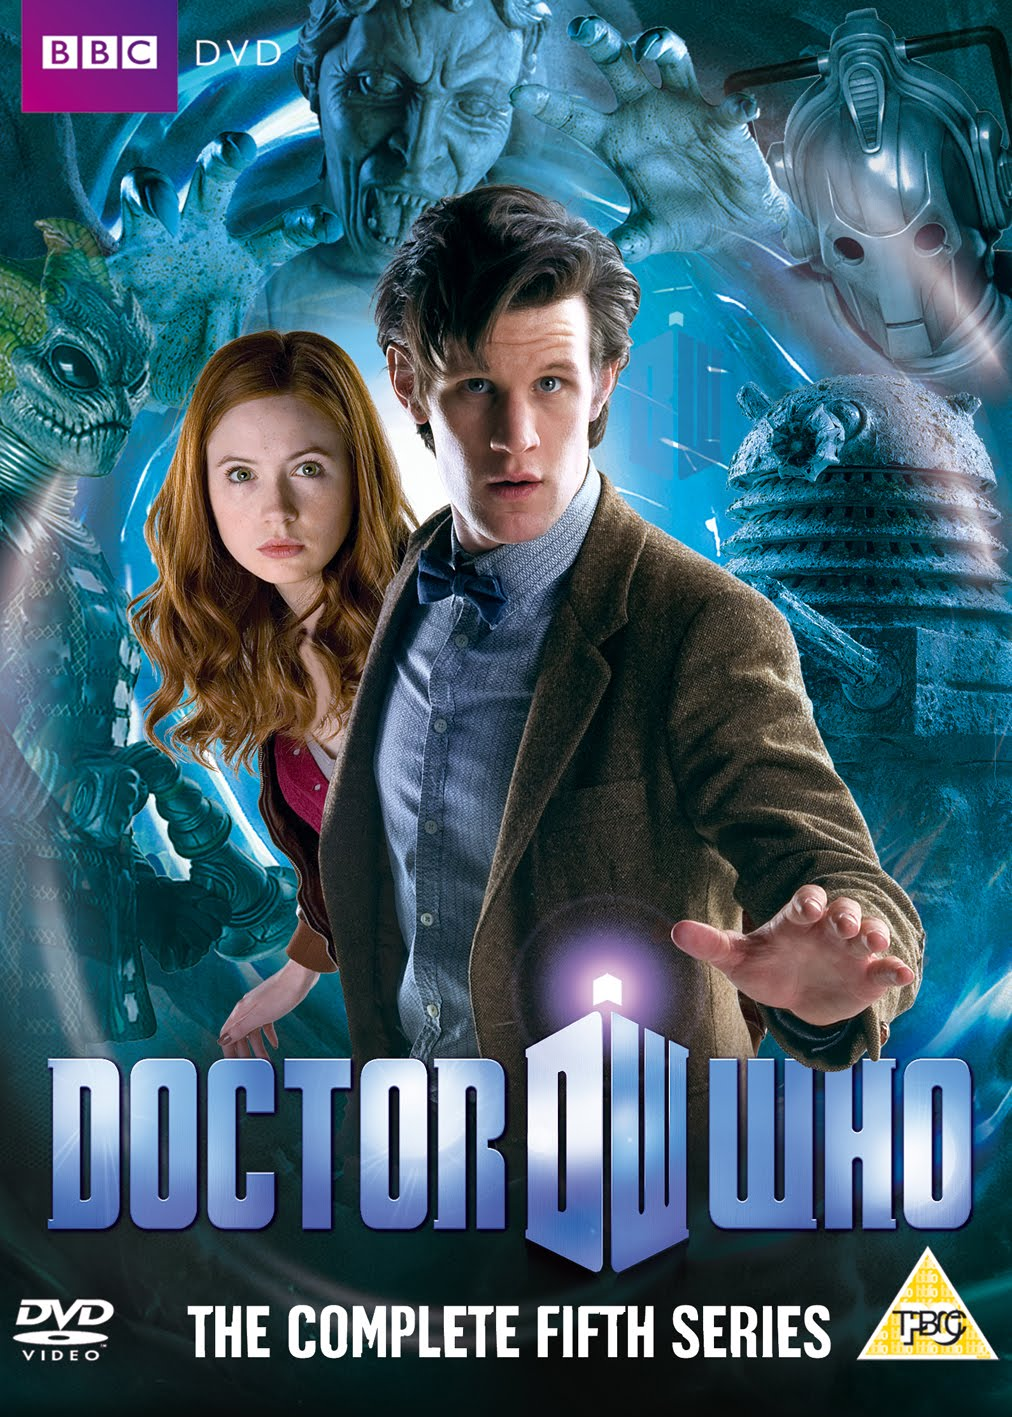 Doctor Who: Season 5